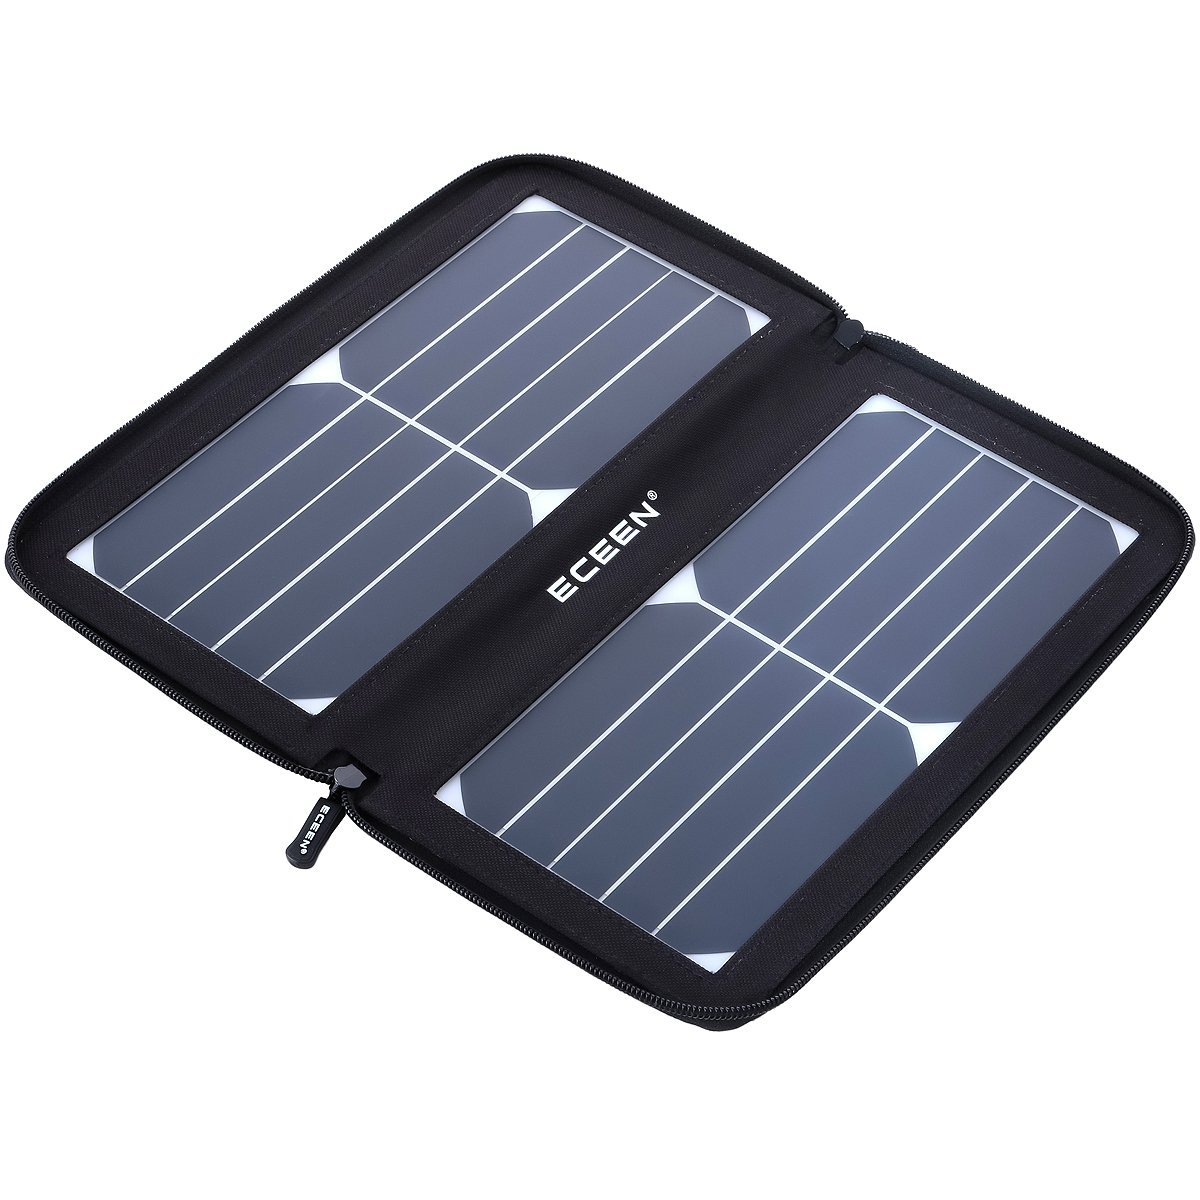 5. ECEEN Solar Charger Panel